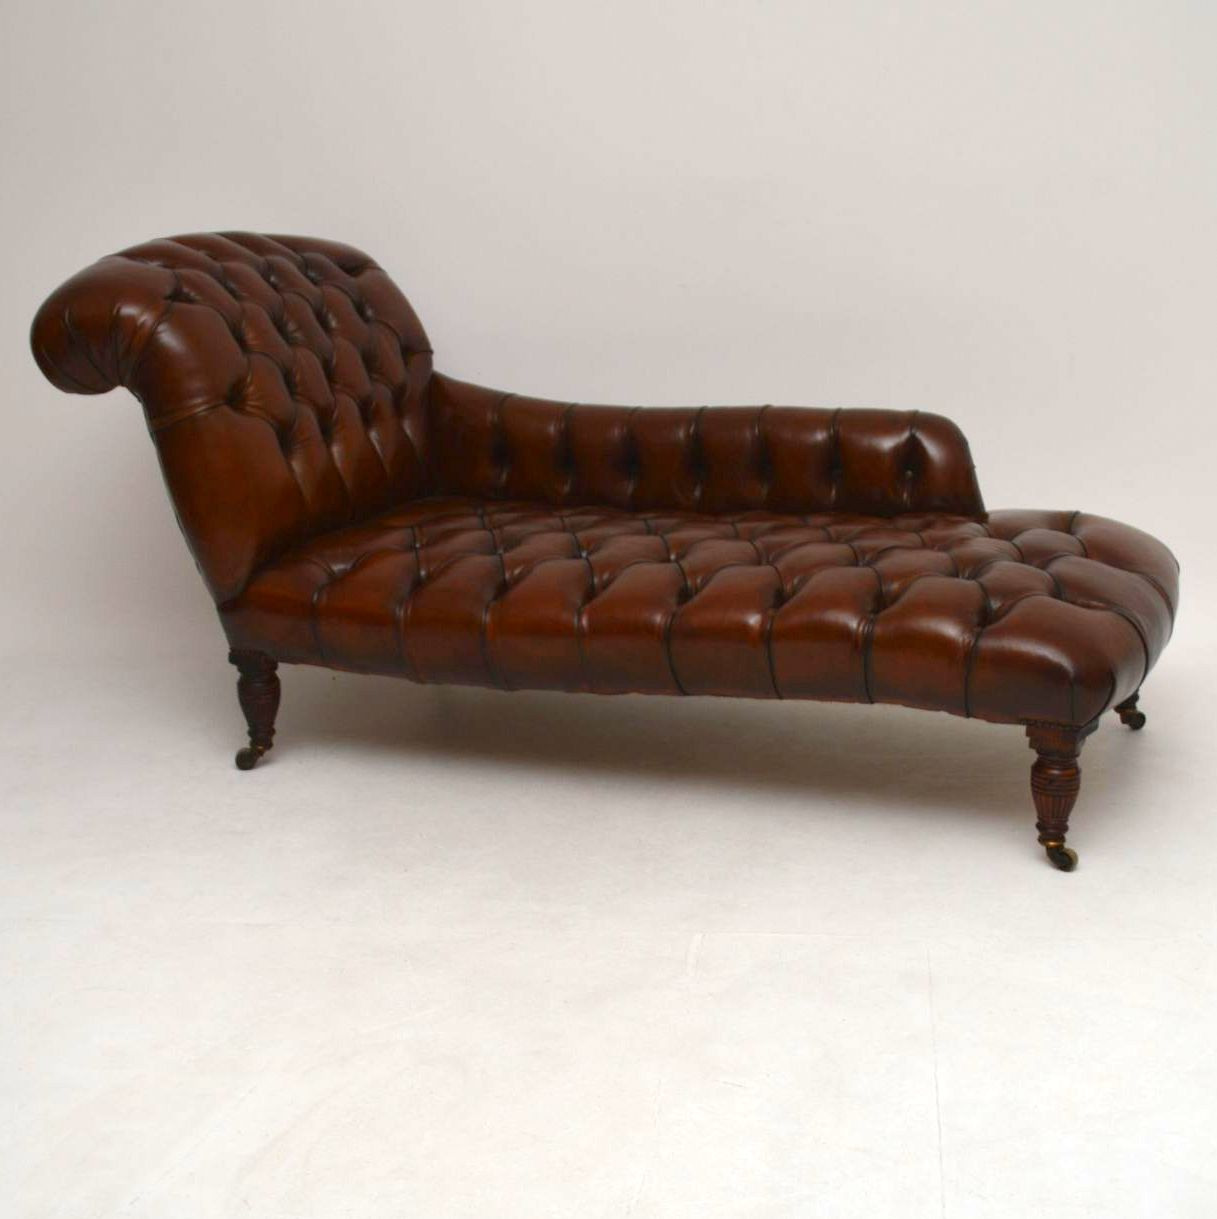 Leather Chaise Lounge Chair Antique Victorian Deep Buttoned Leather Chaise Lounge